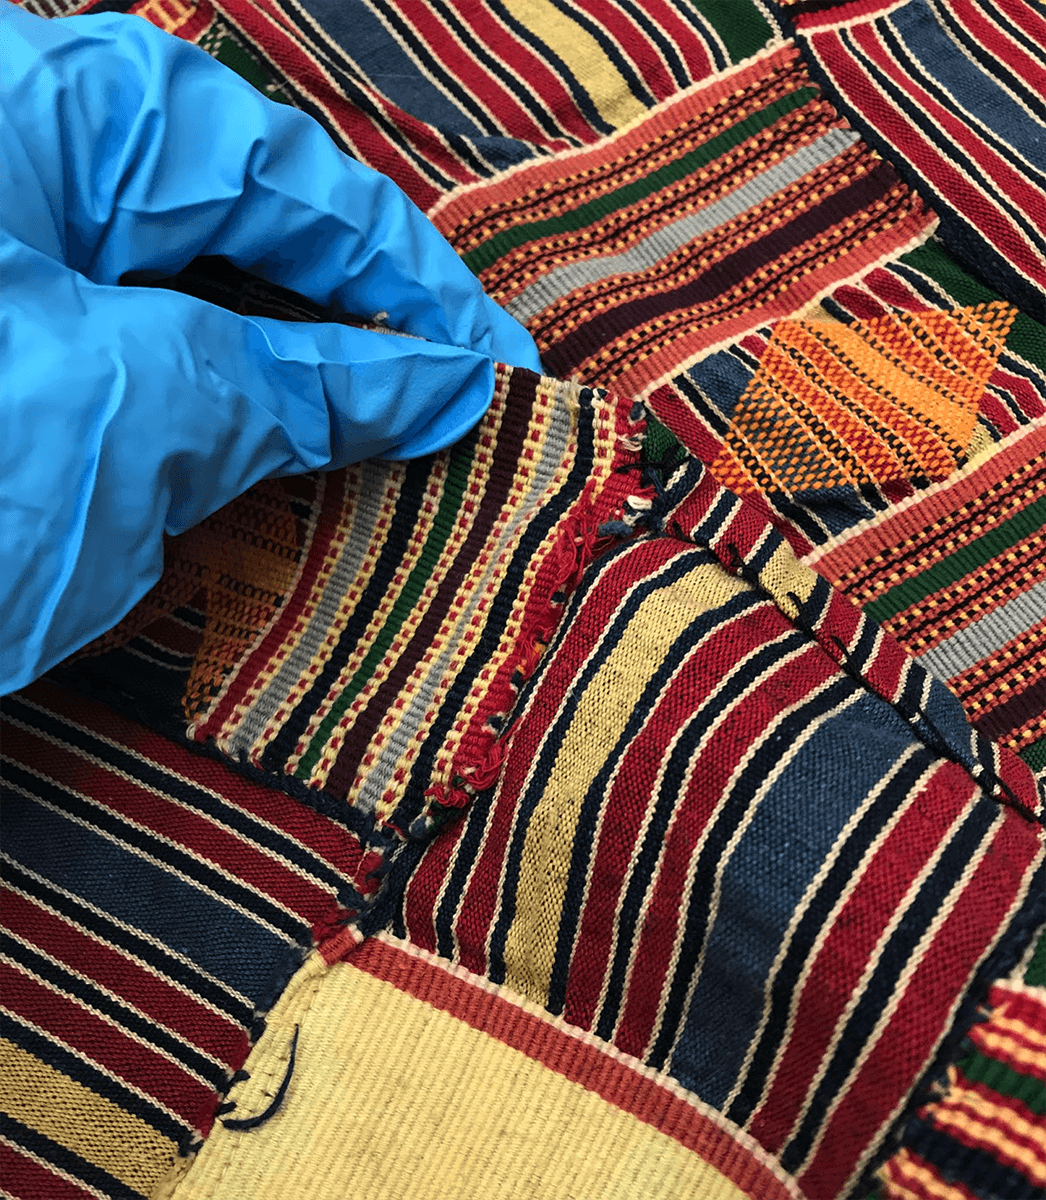 gloved hand examining patterned African textile